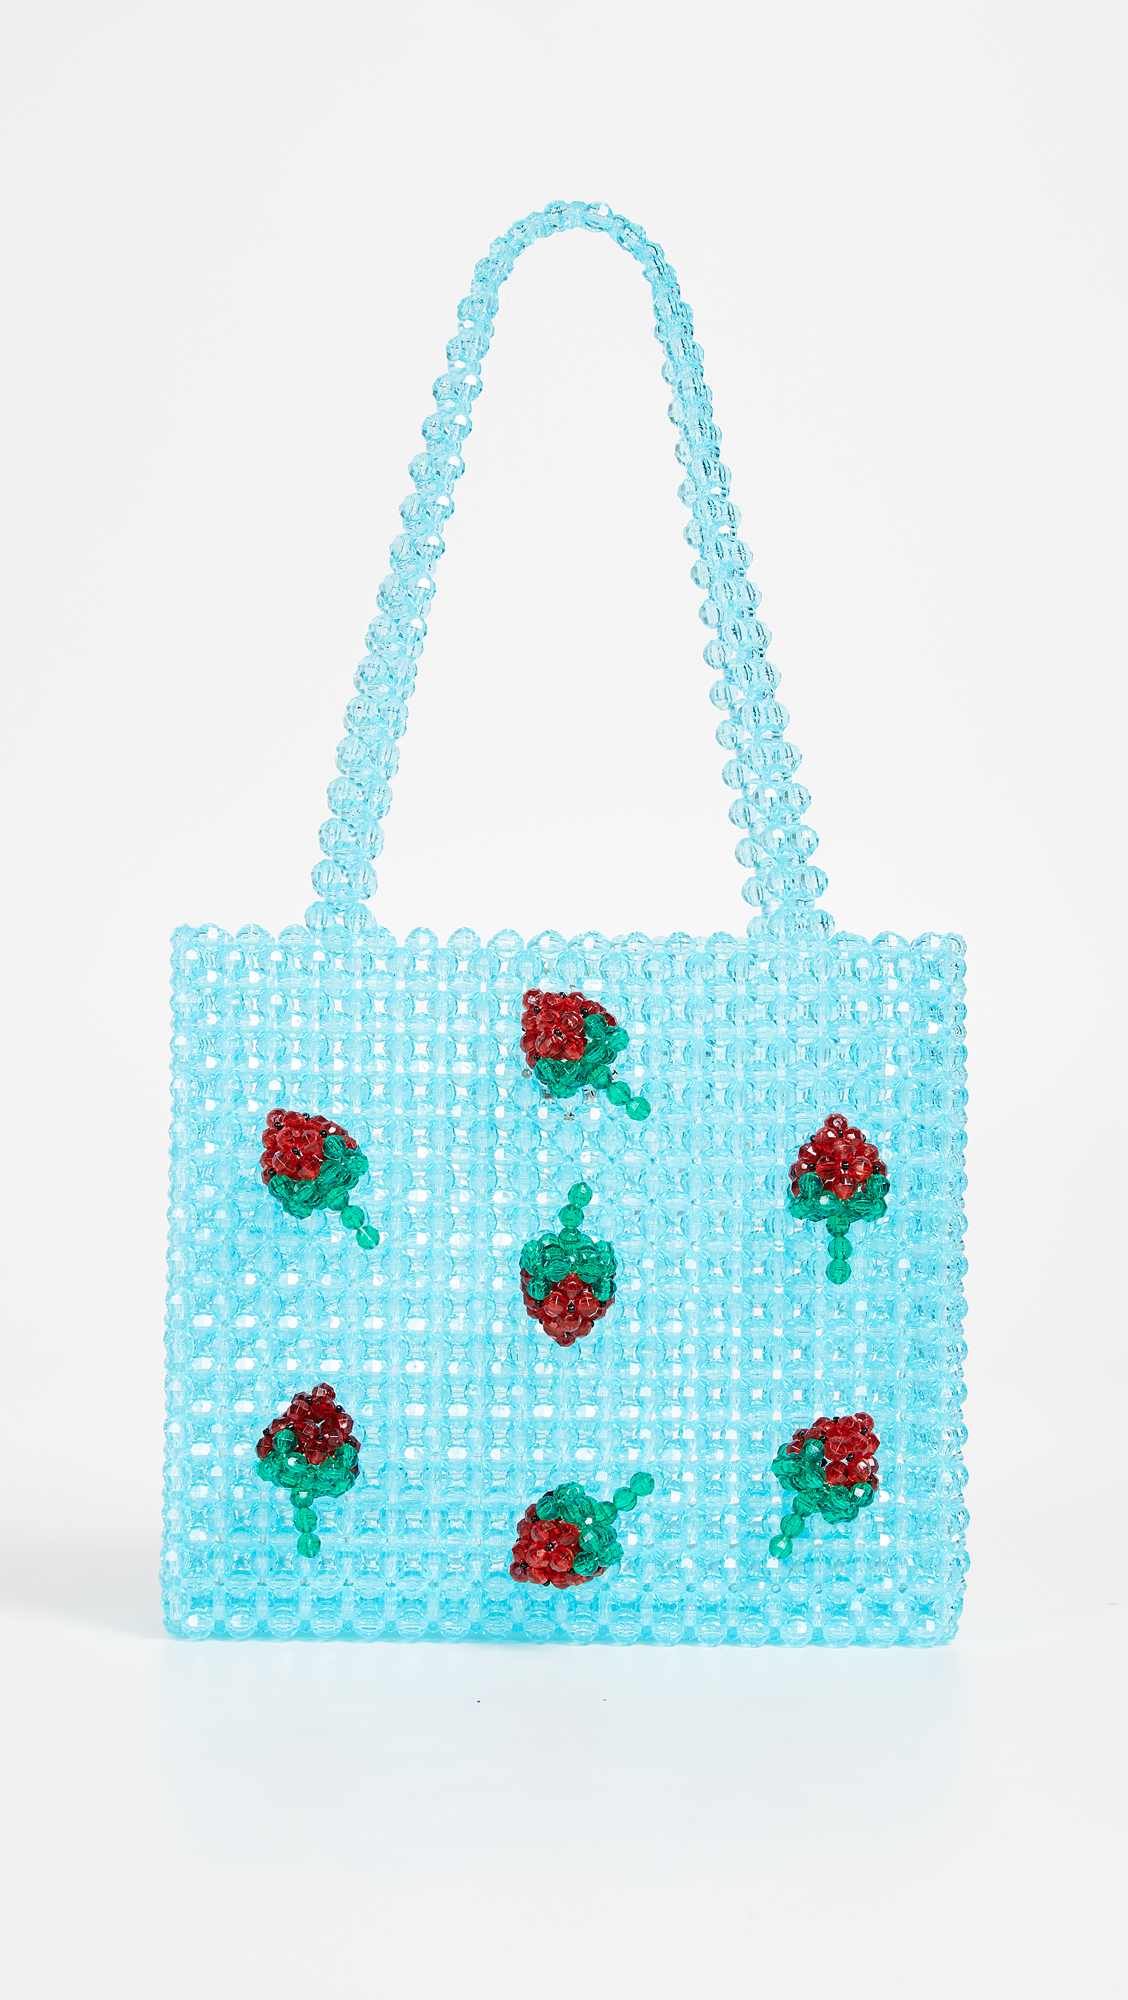 Super Cute Woven Beaded Bags by Susan Alexandra - Strawberry Bag